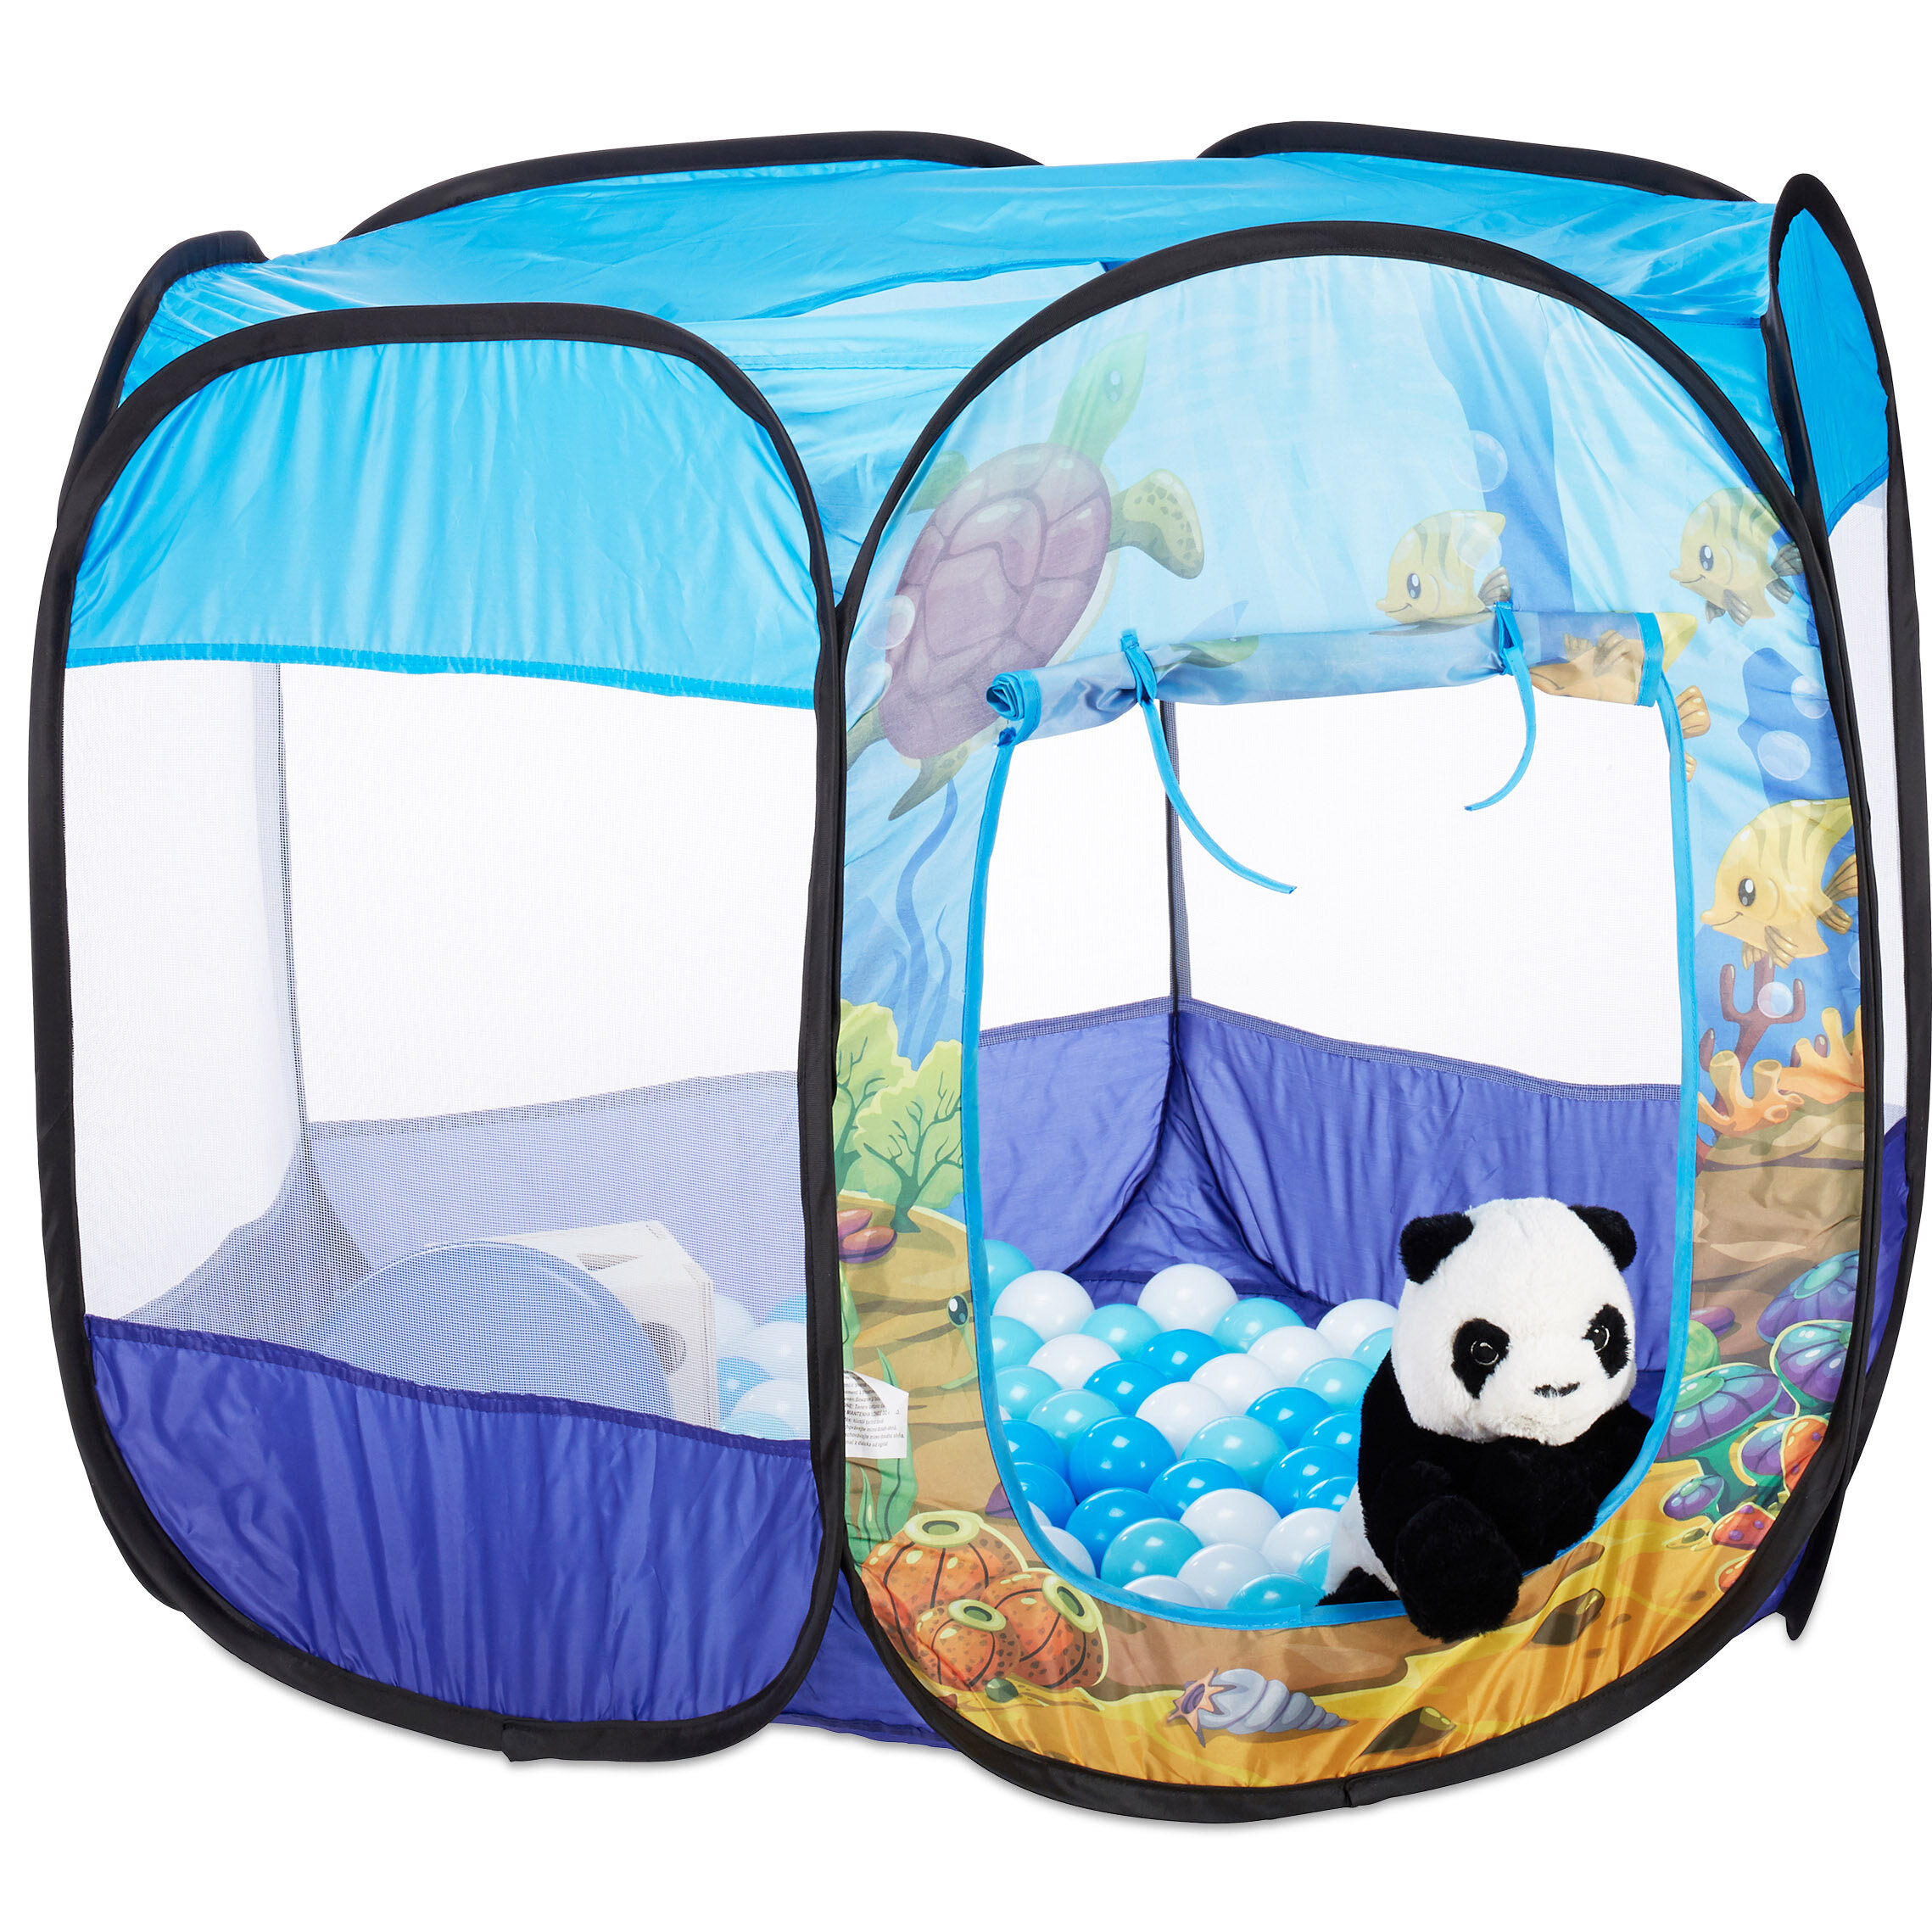 Charland Pop Up Play Tent